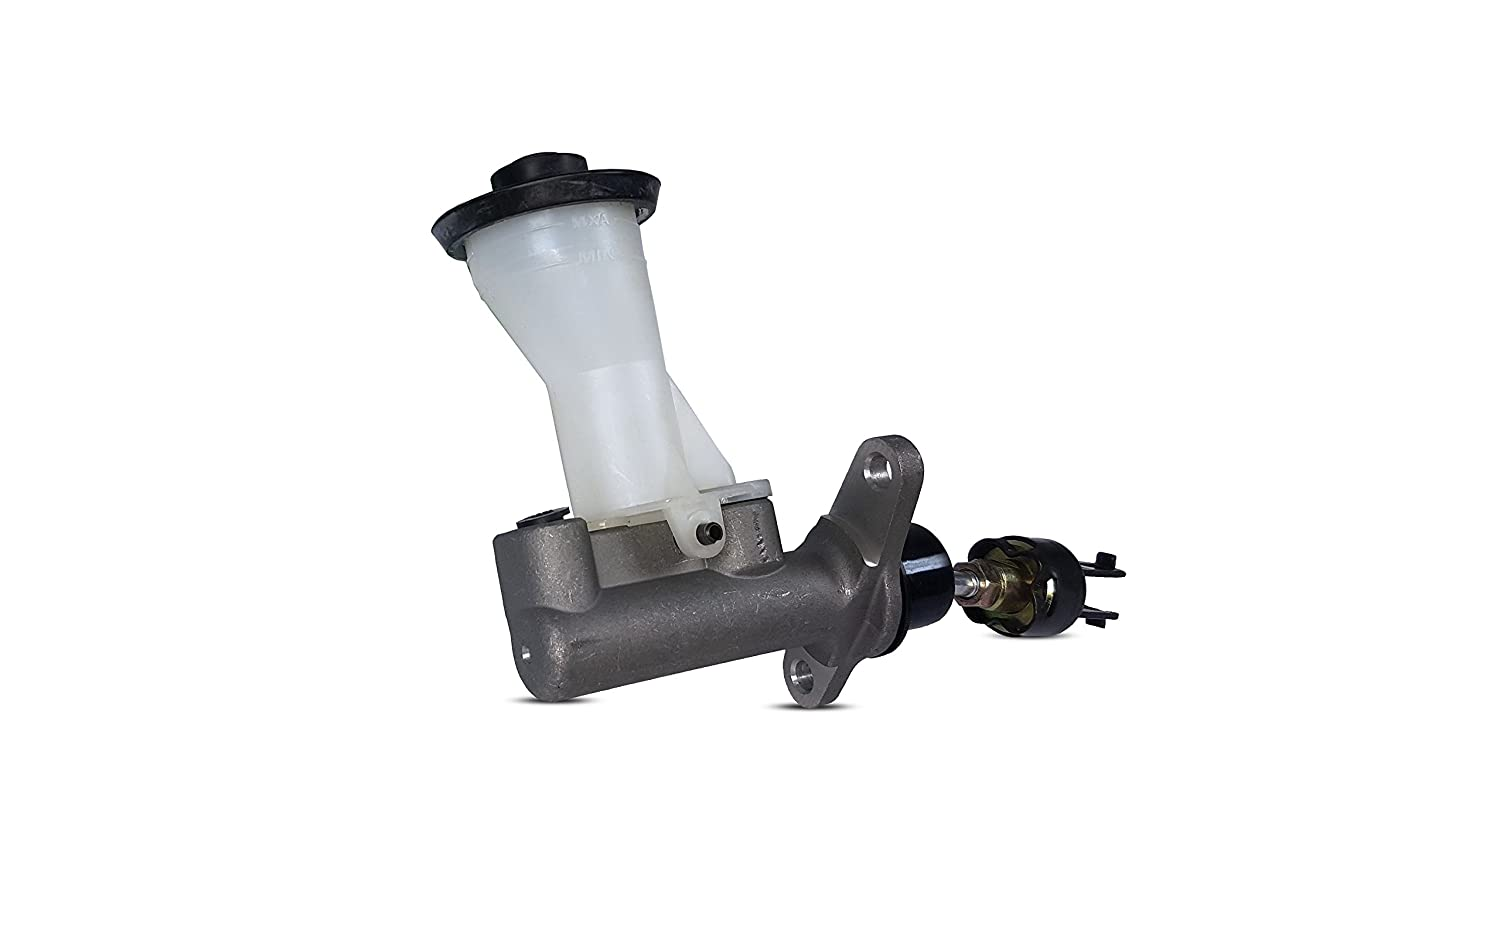 New Clutch Master Cylinder For Toyota 4Runner 2.7L 4Cyl 3.4L V6 Southeast Clutch